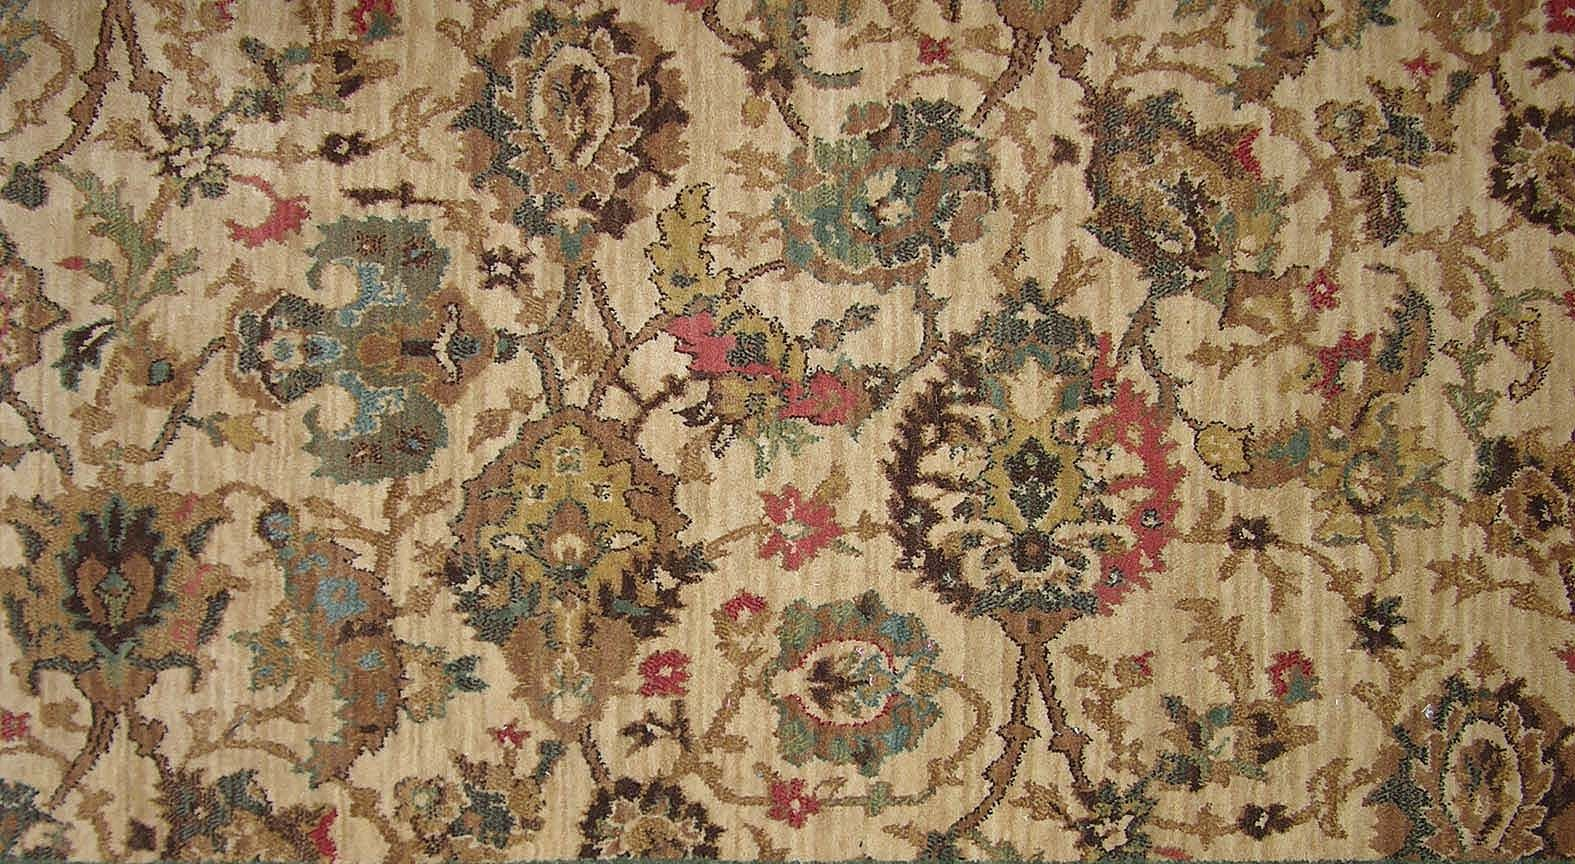 Oriental Patterned Carpet Gallery Sognante Beige 100 Wool Wool Carpet Patterned Carpet Carpet